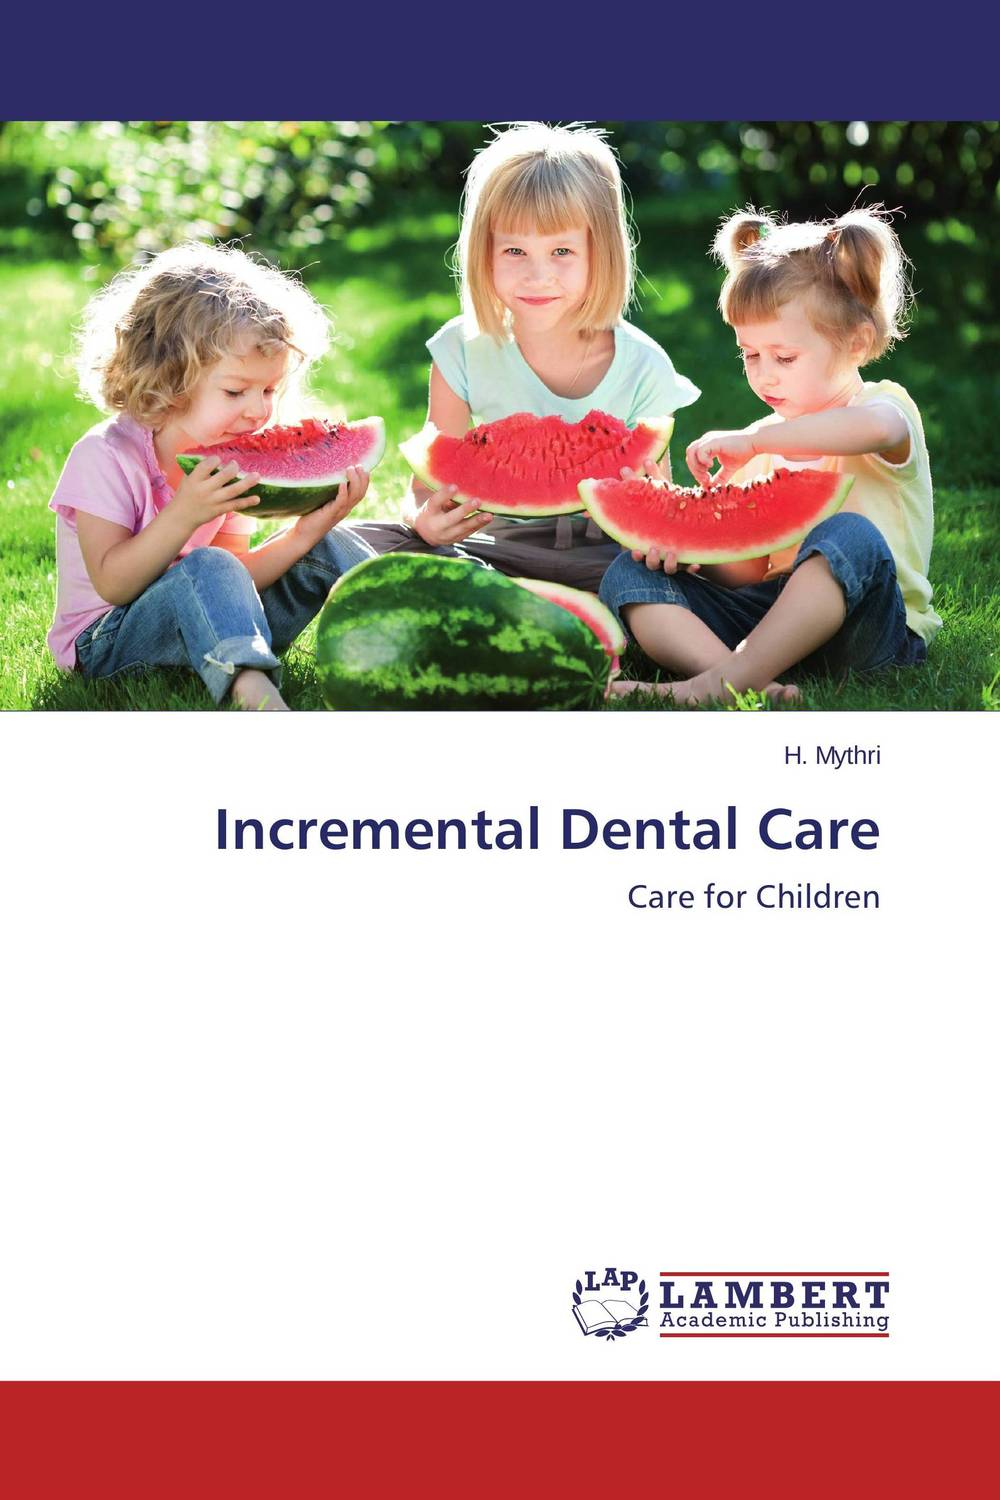 Incremental Dental Care